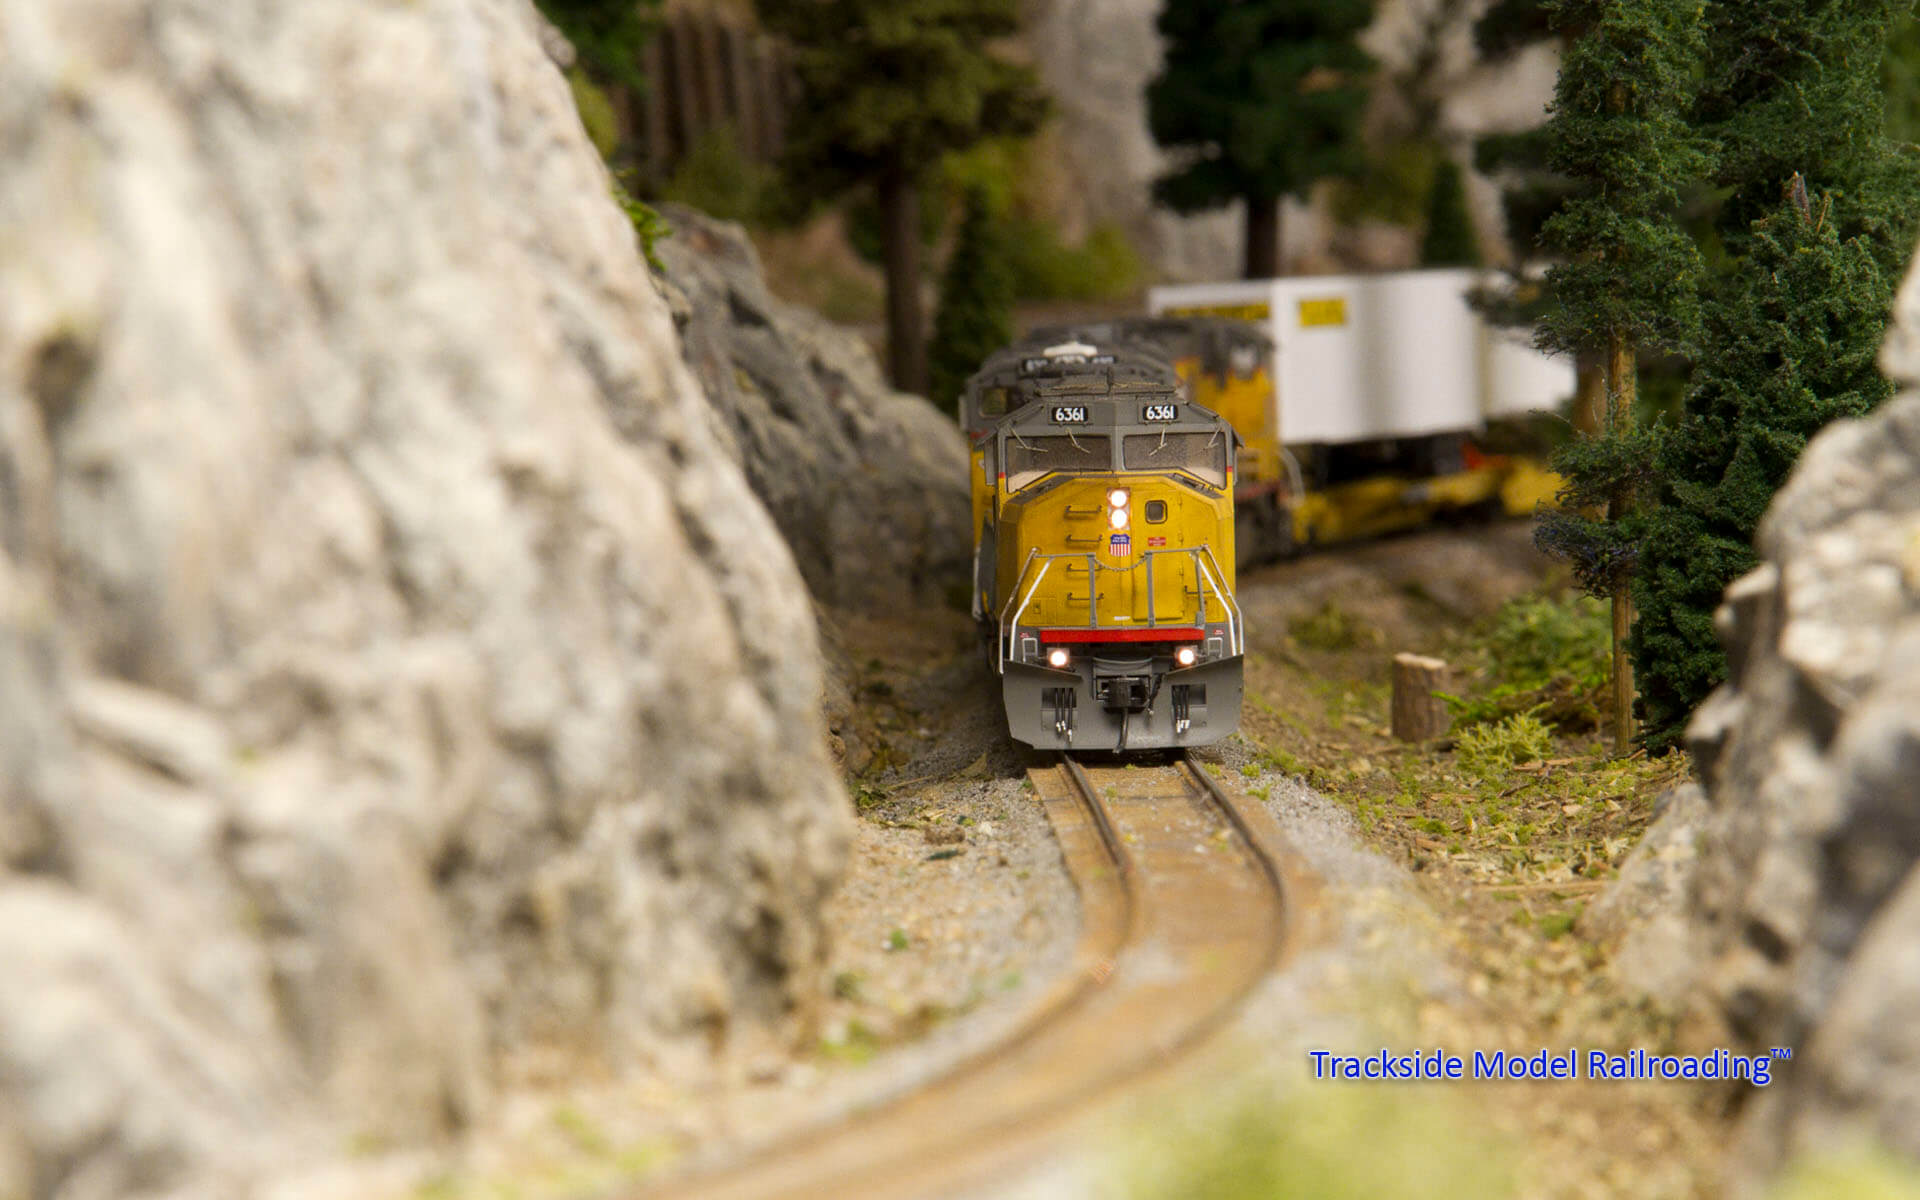 Trackside Model Railroading River City Western Club HO Scale River City Western